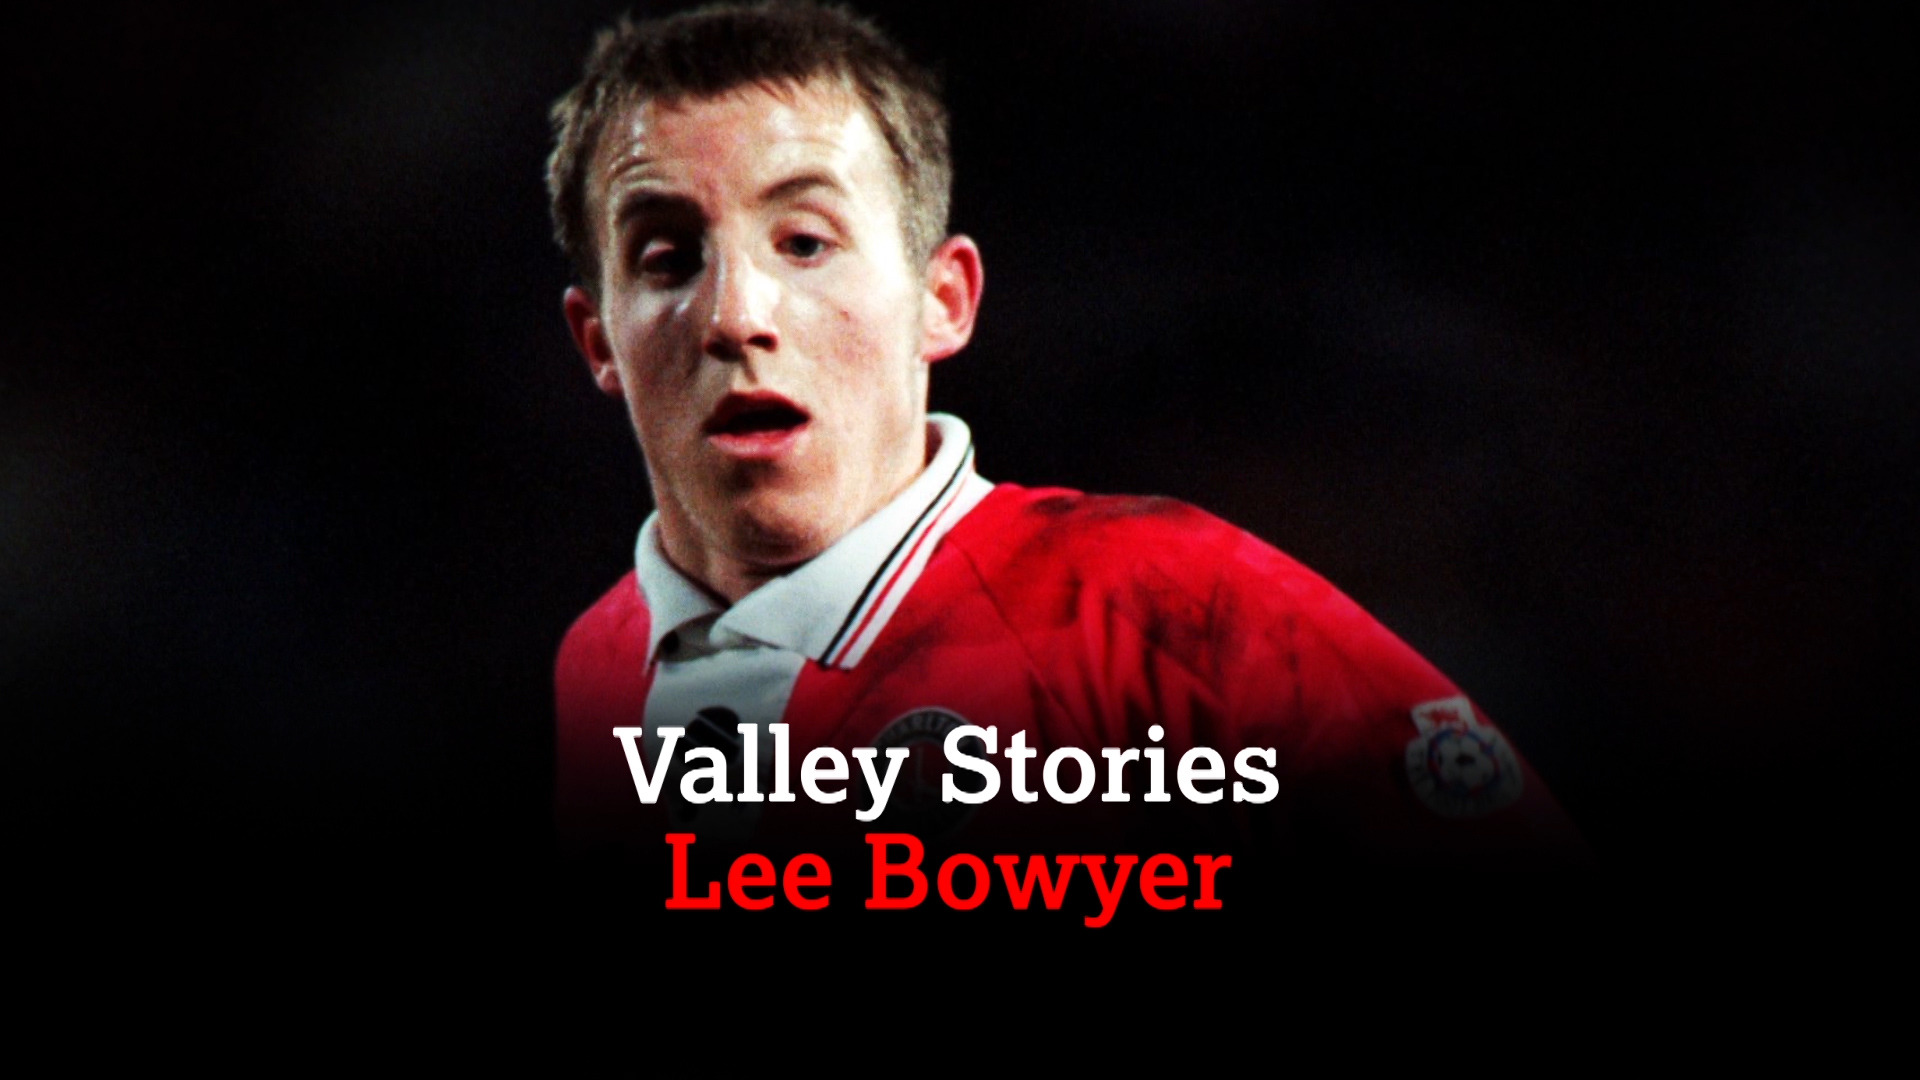 VALLEY STORIES | Lee Bowyer